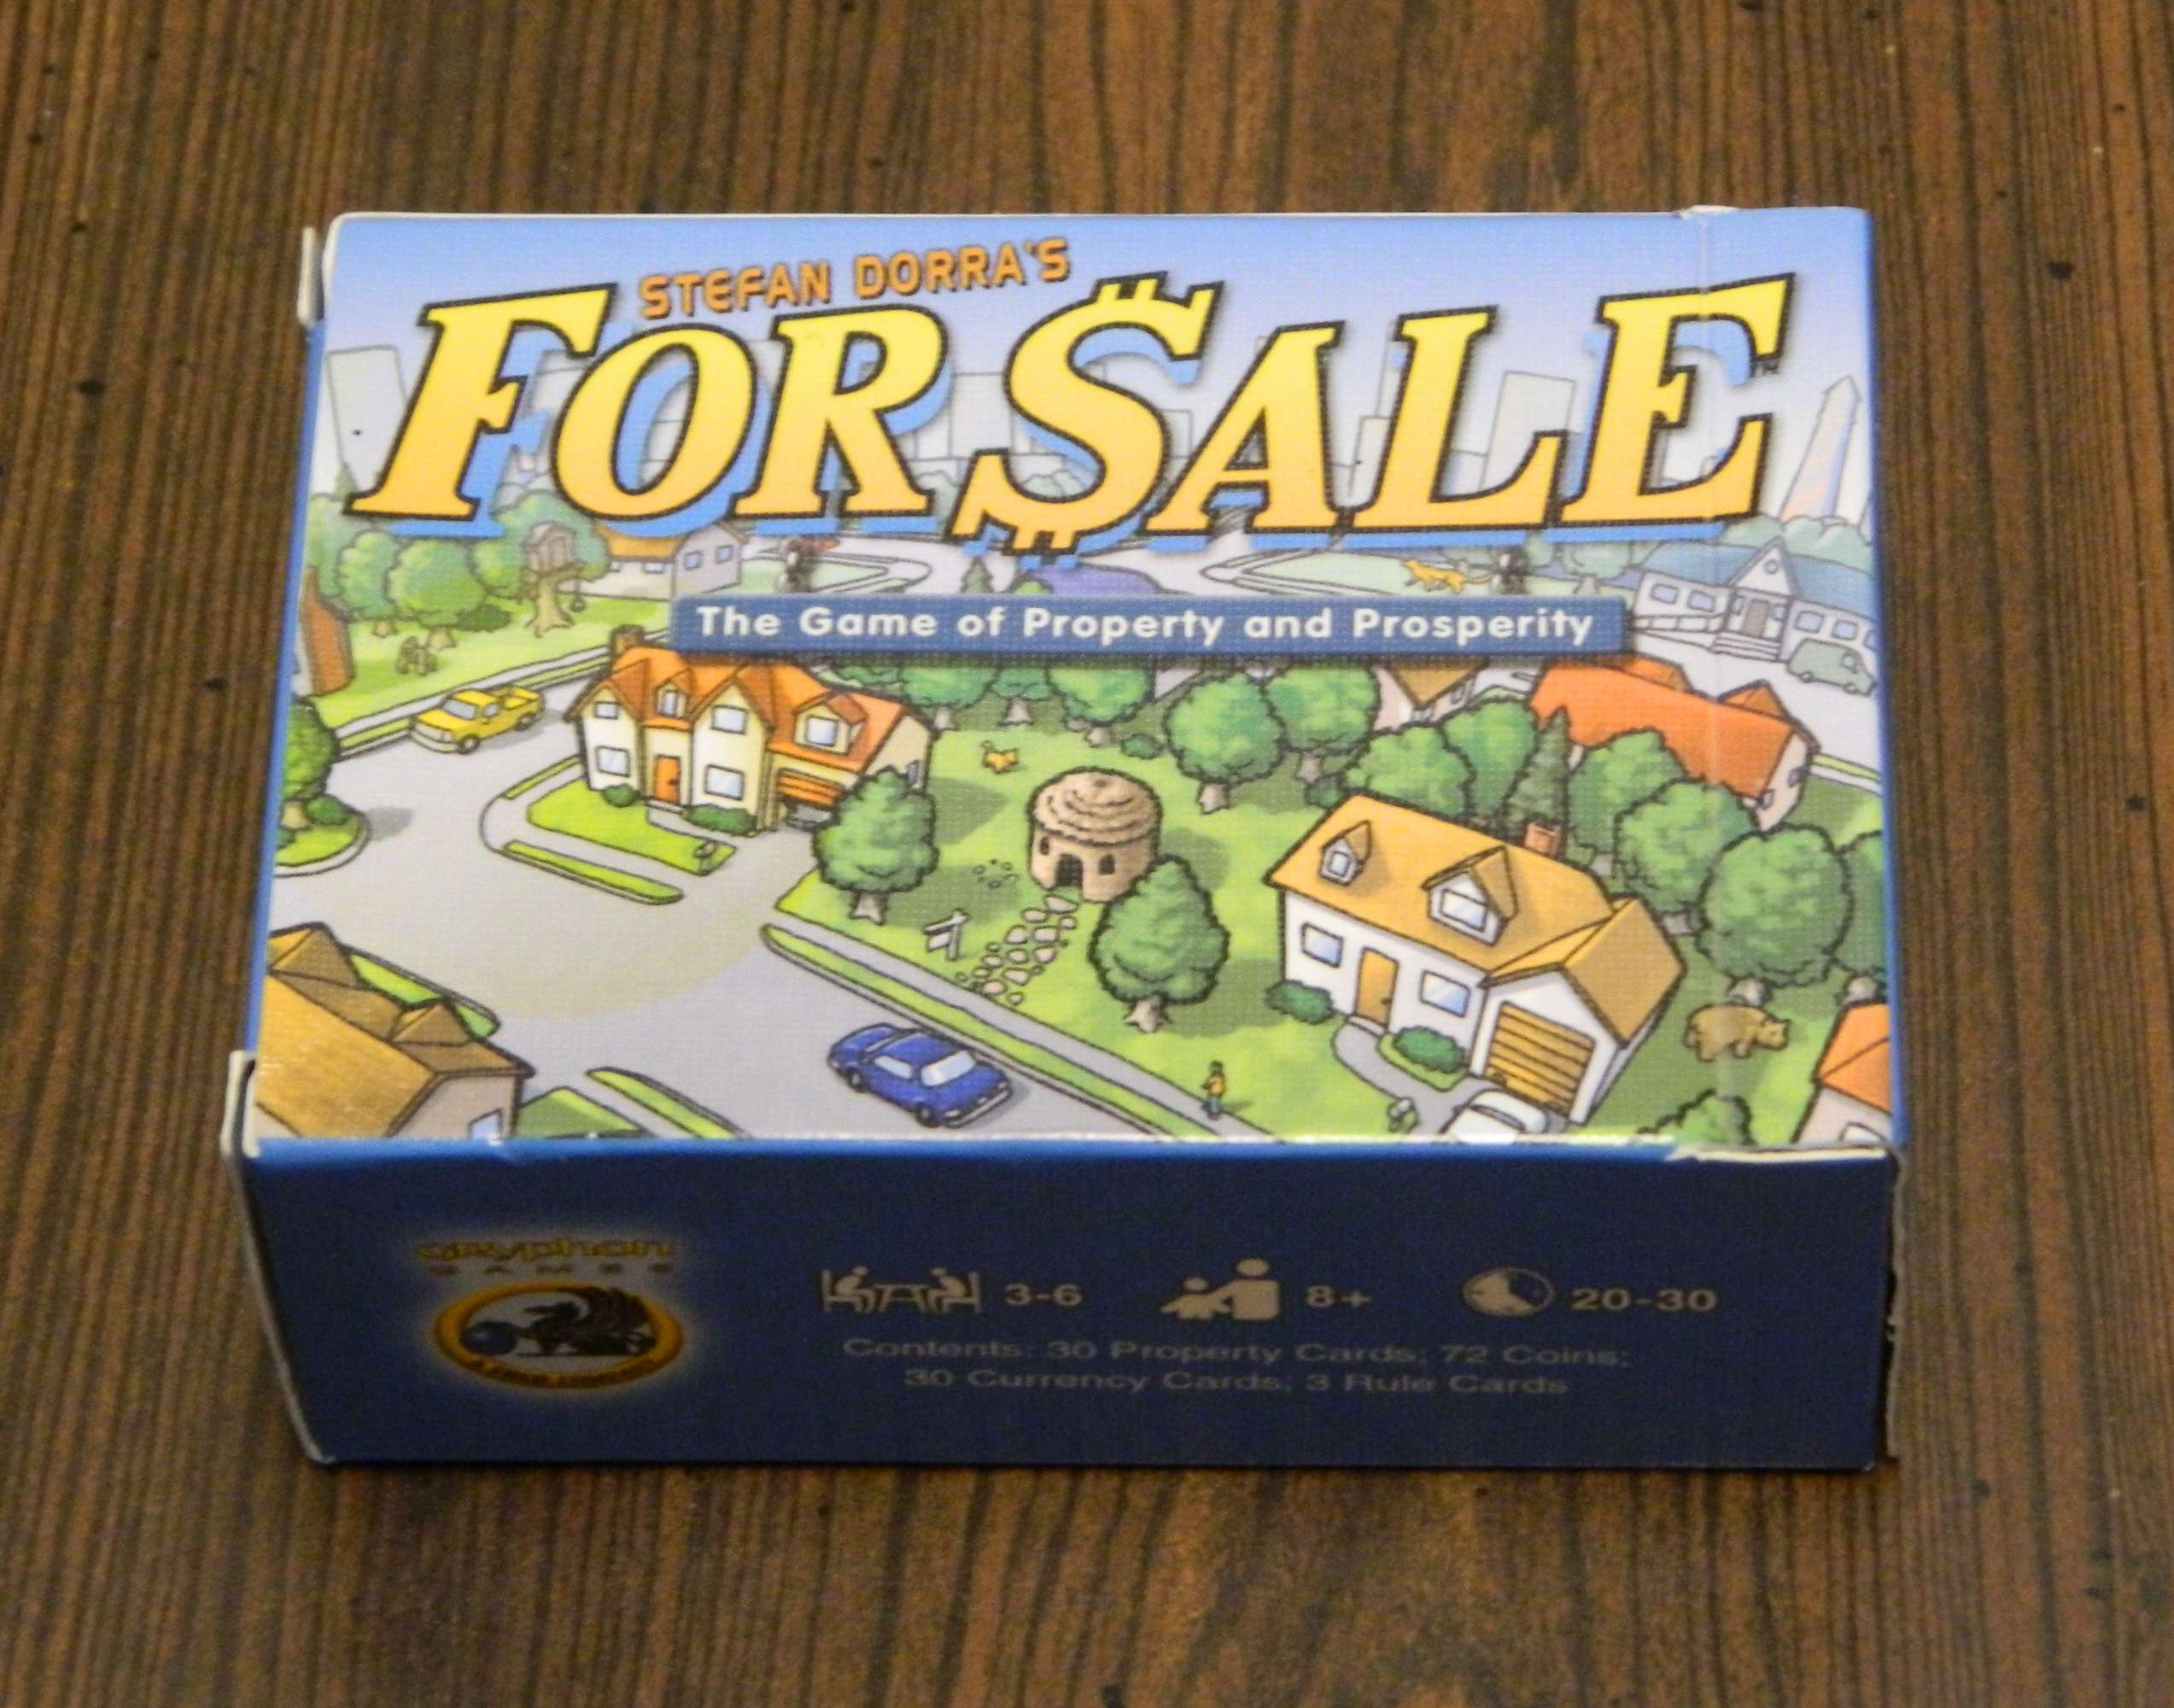 For Sale Card Game Box